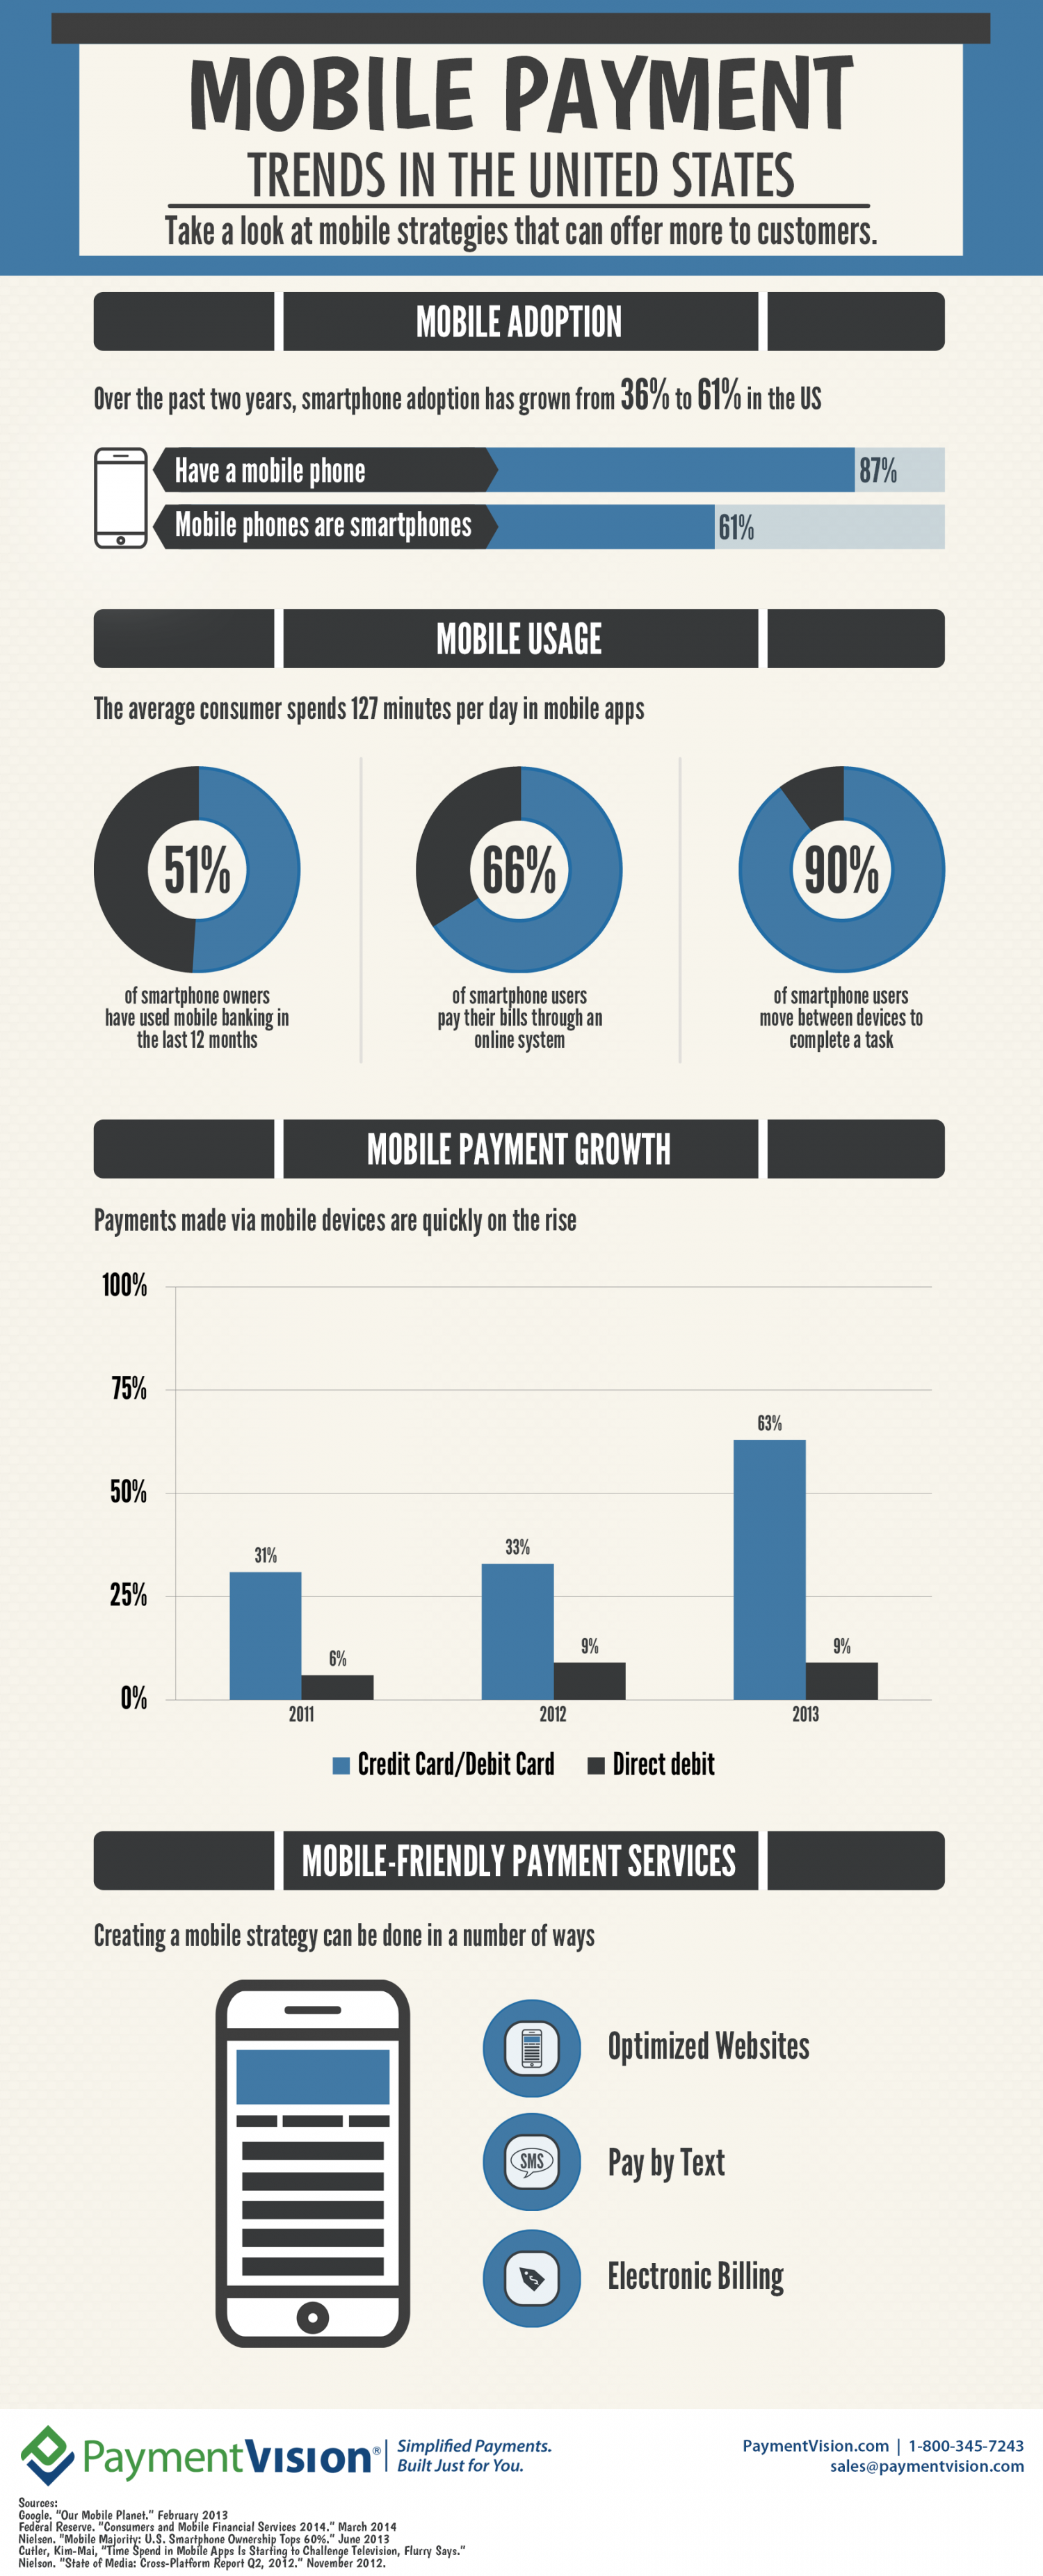 Mobile Payment Trends in the United States Infographic | PaymentVision Infographic